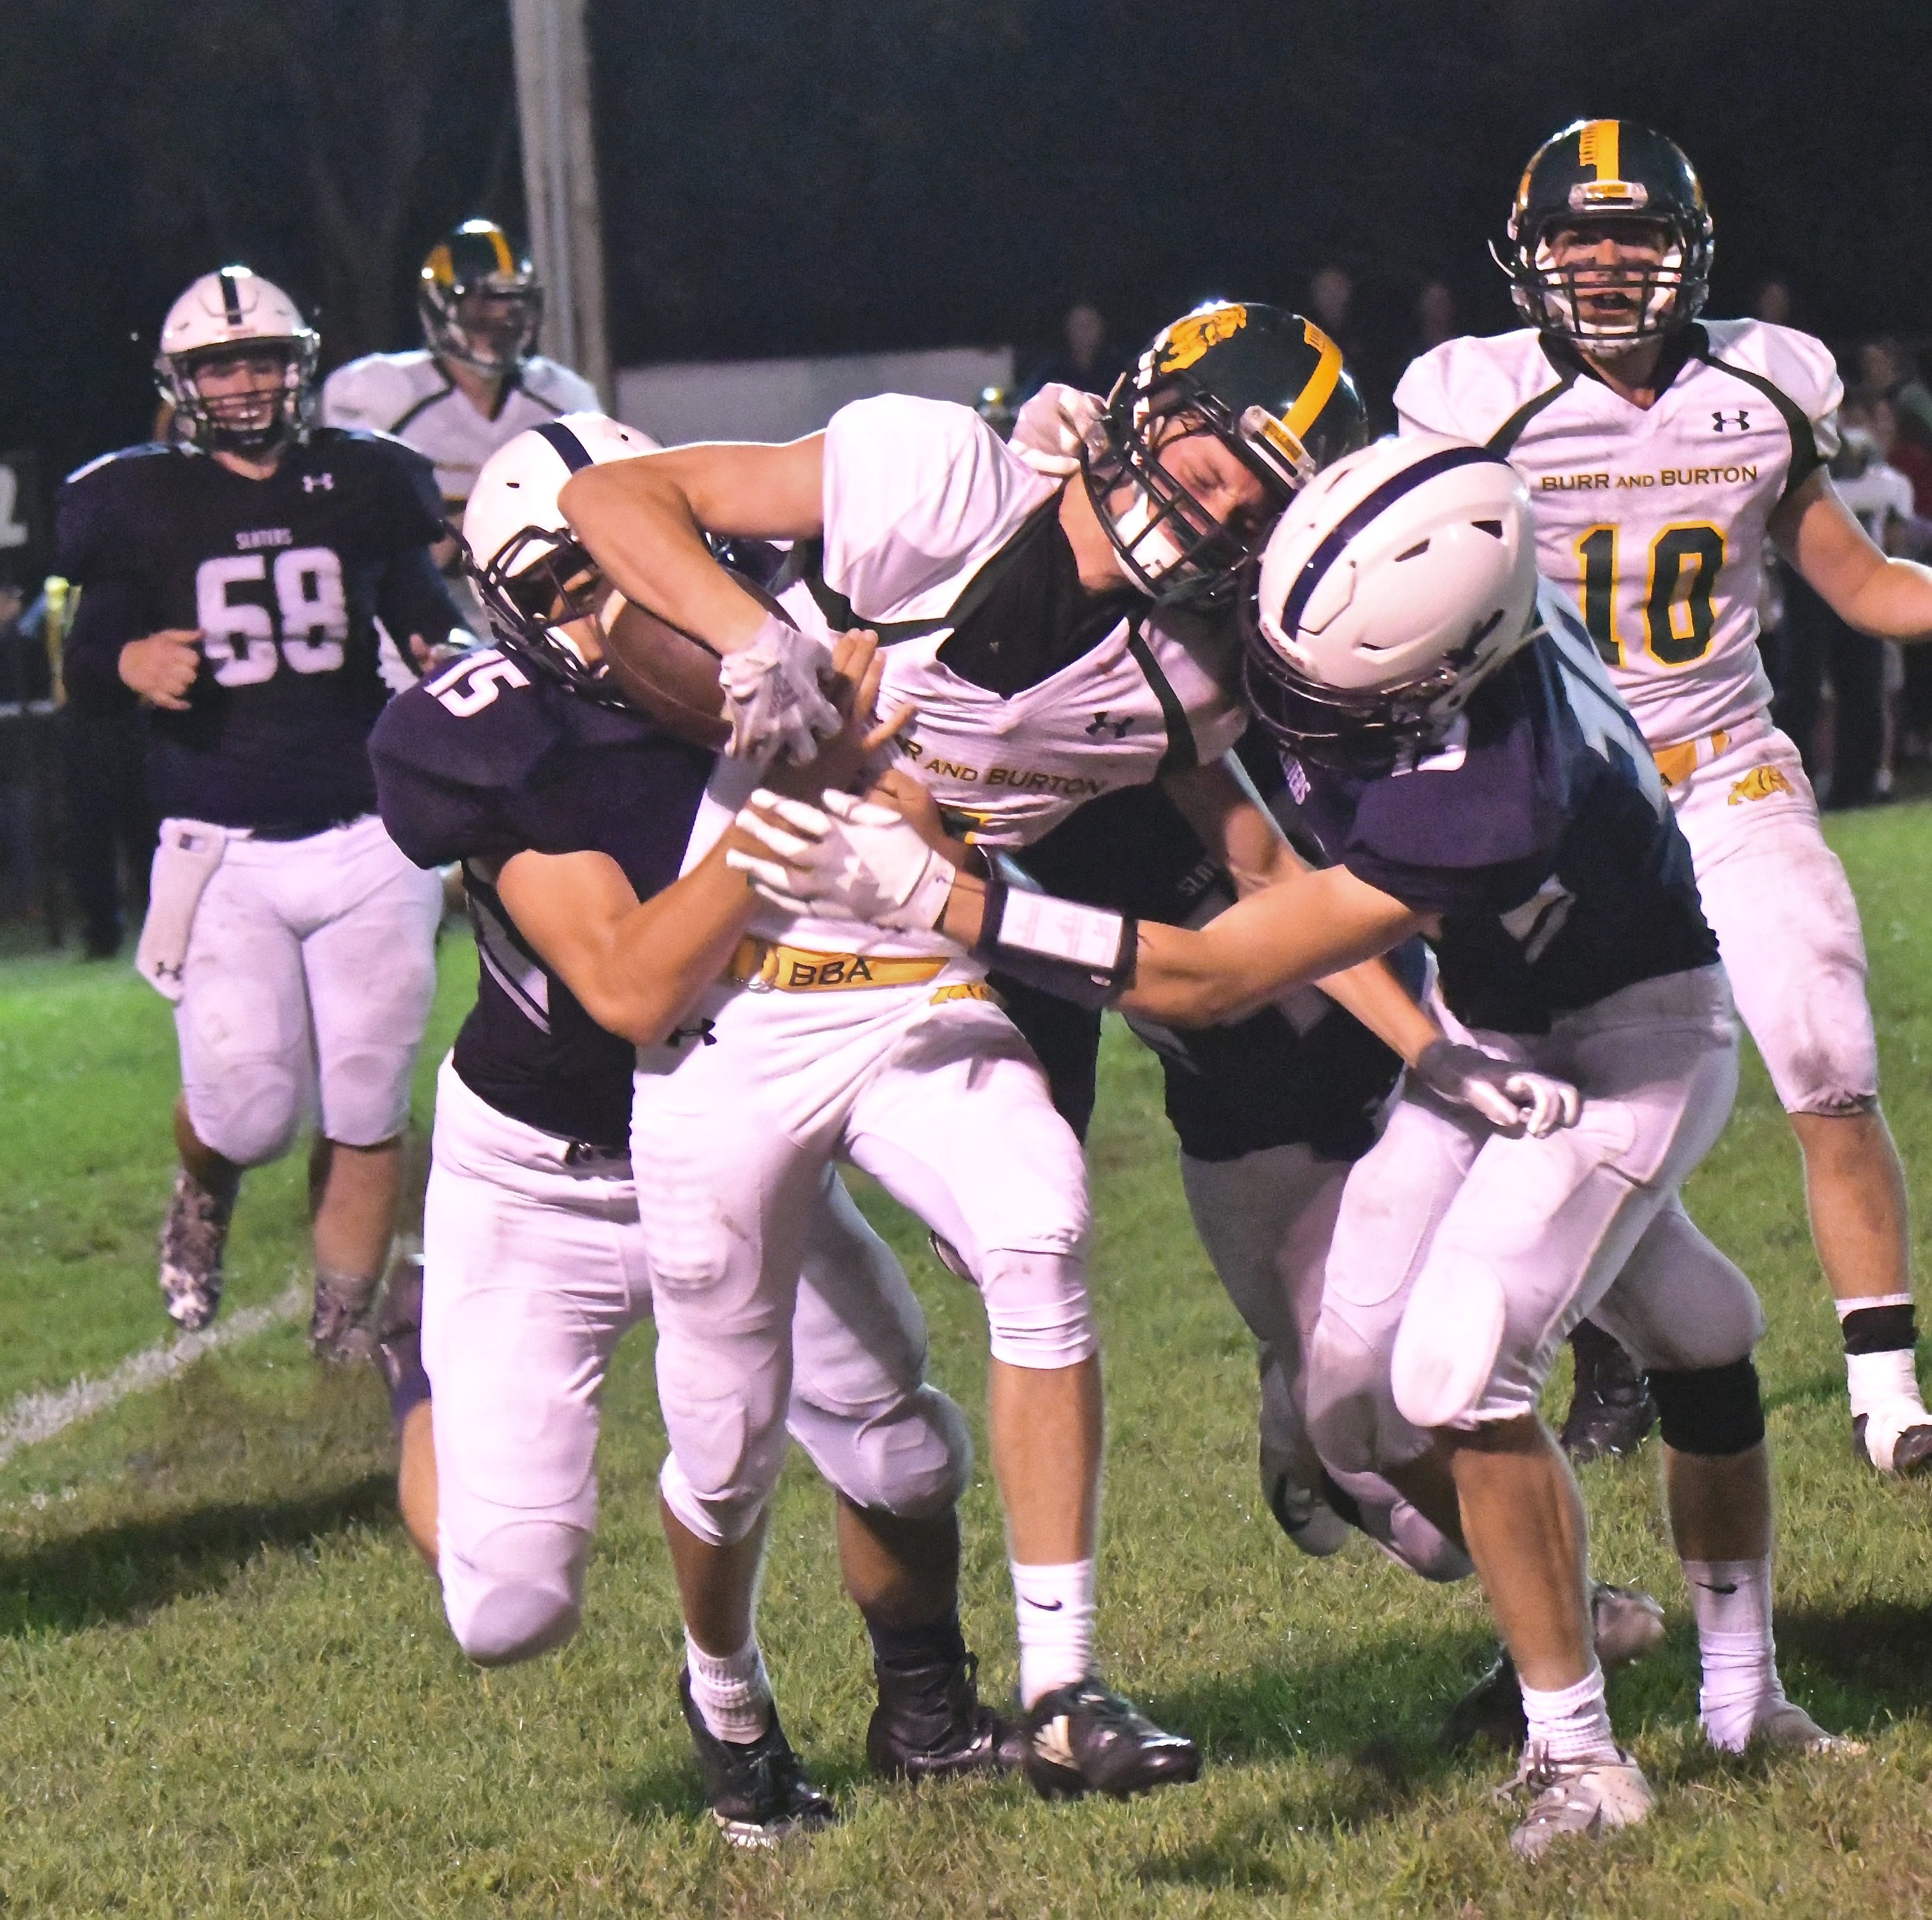 Burr and Burton's Jake Nicholson, center, is brought down by Fair Haven's Doug Hendee (15) and Brett Huntley (19) in the first half on Friday evening at Fair Haven Union High School.